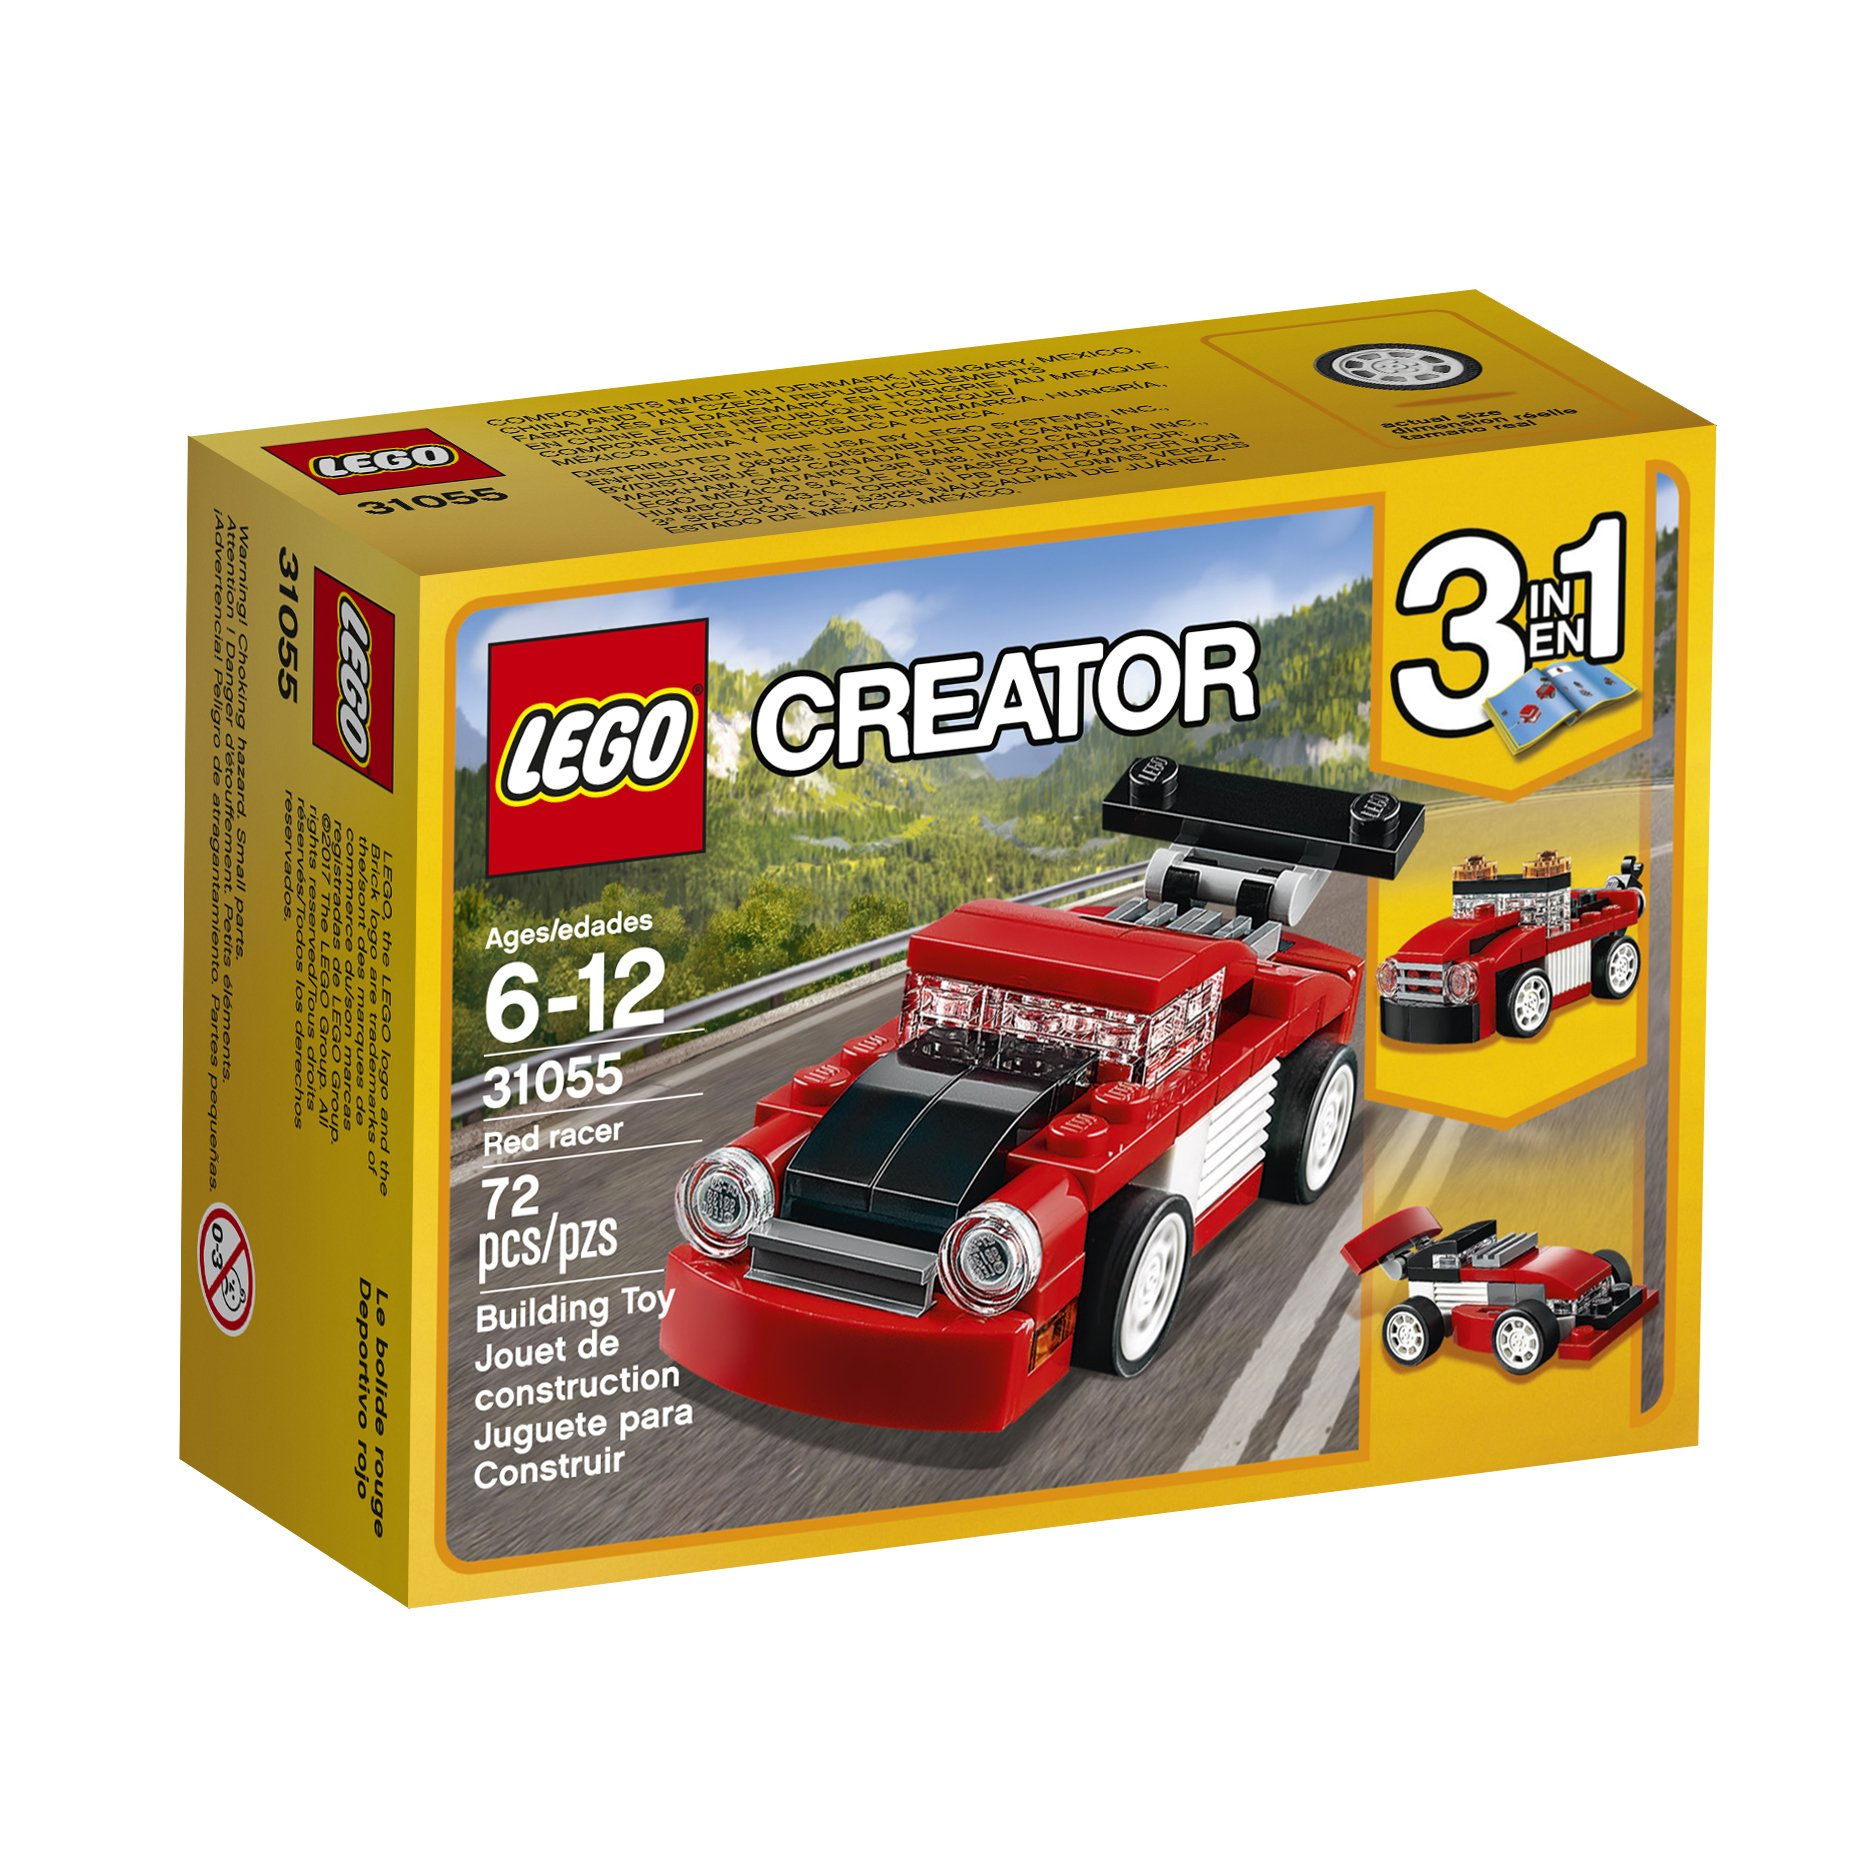 Sets Details Cruiser About 1 Kit 31055 Cars Creator Toys Building Toy Lego Car 3 Red Racer In iPXkZOu